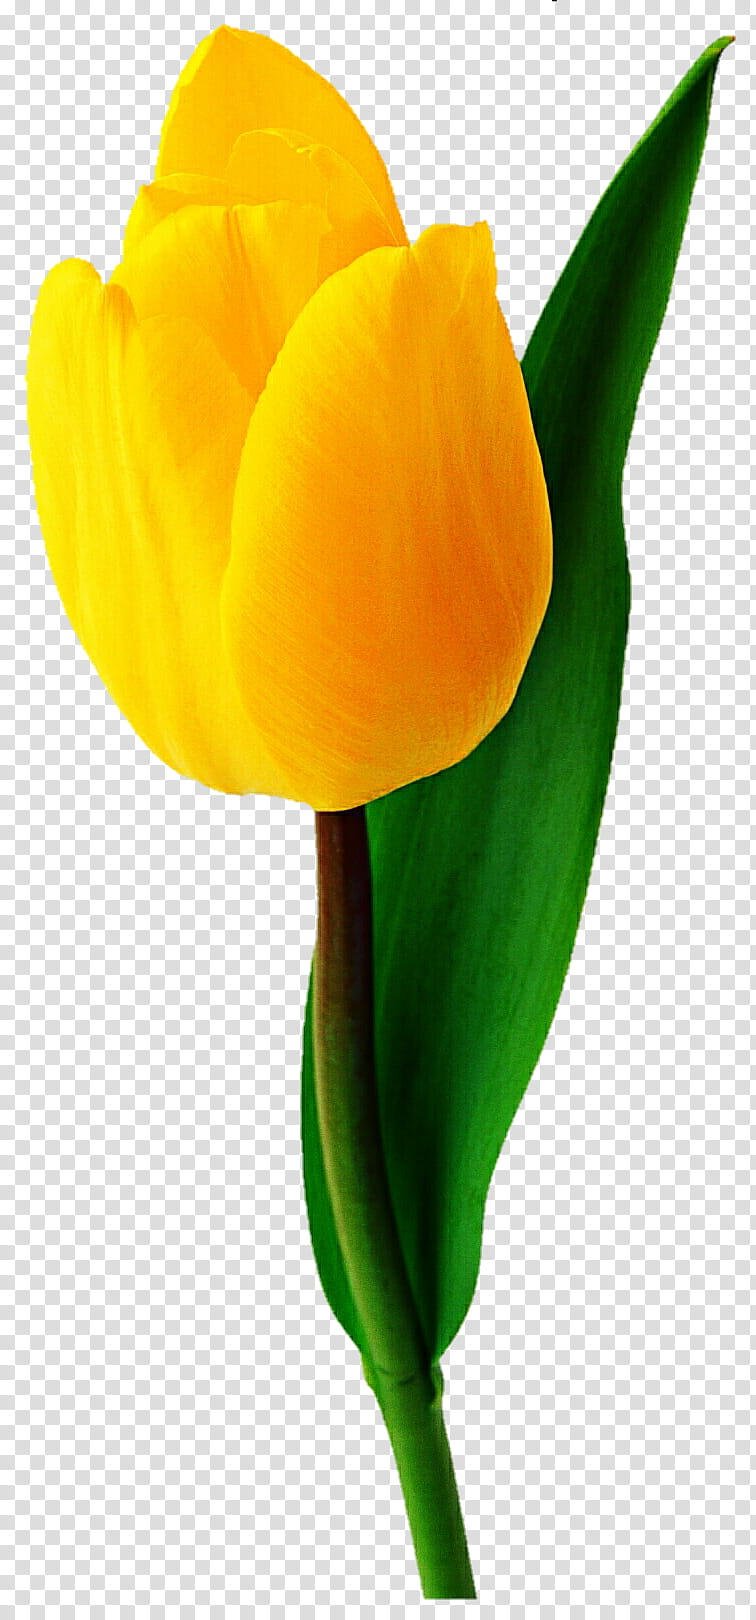 Chiffon Yellow Tulip transparent background PNG clipart.